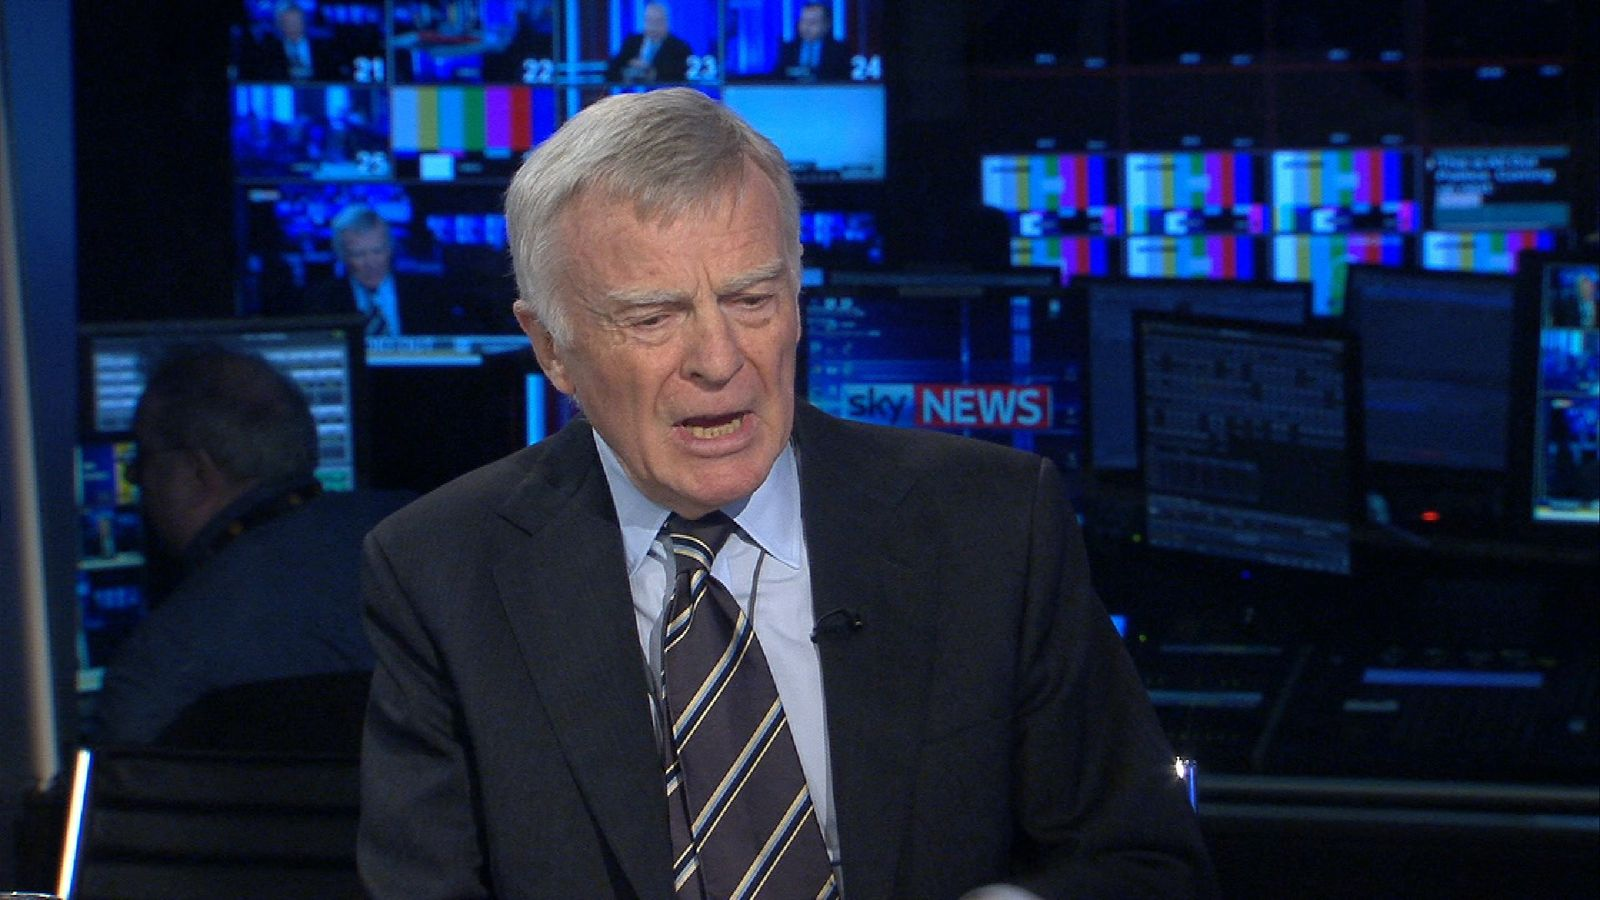 Max Mosley says he no longer supports fascism